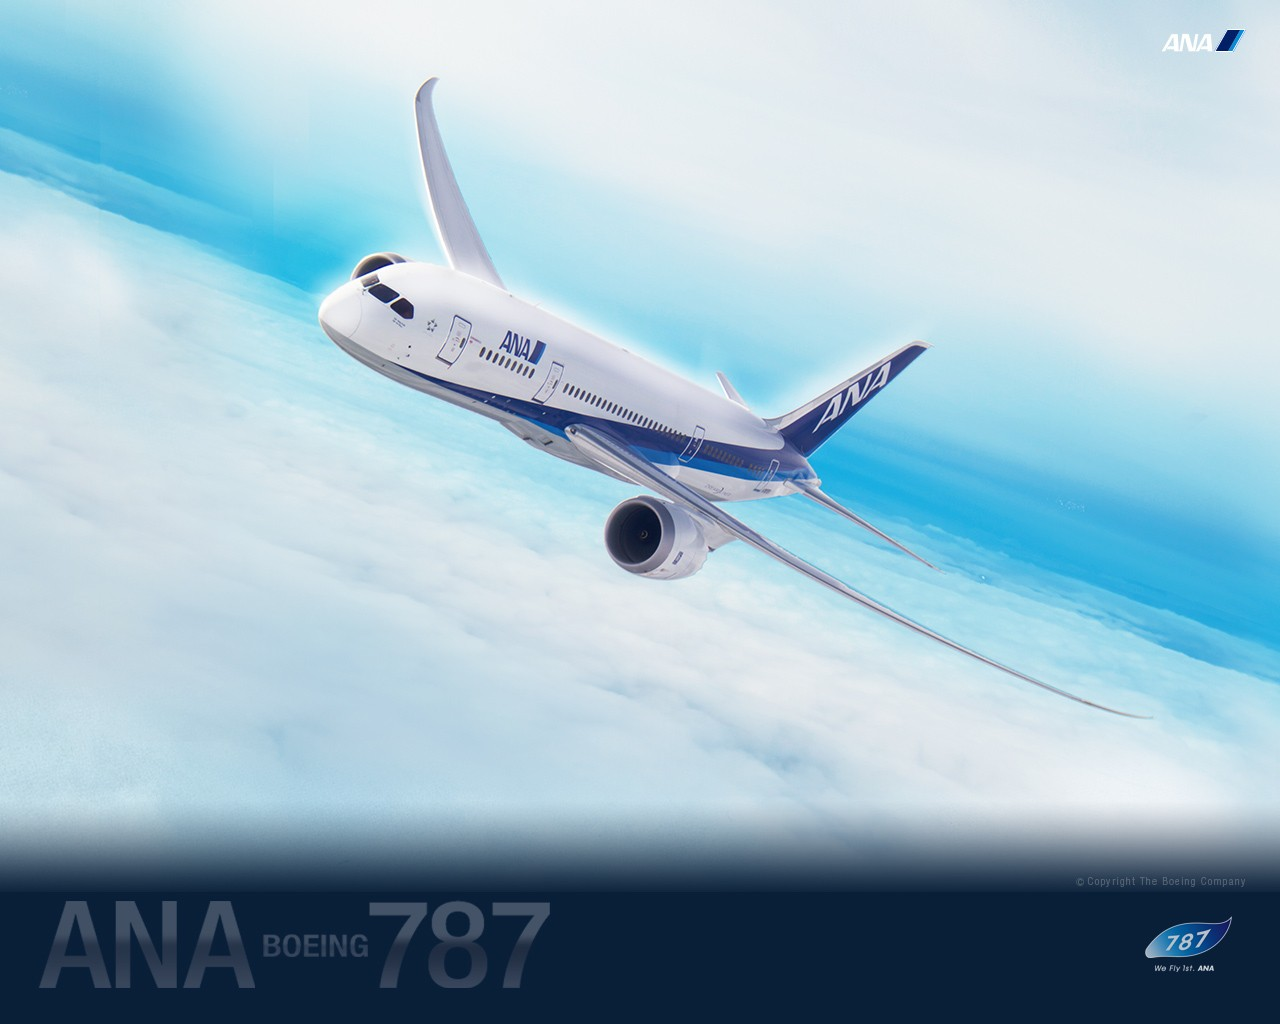 ANA All Nippon Airways Boeing Dreamliner wallpaper 30613